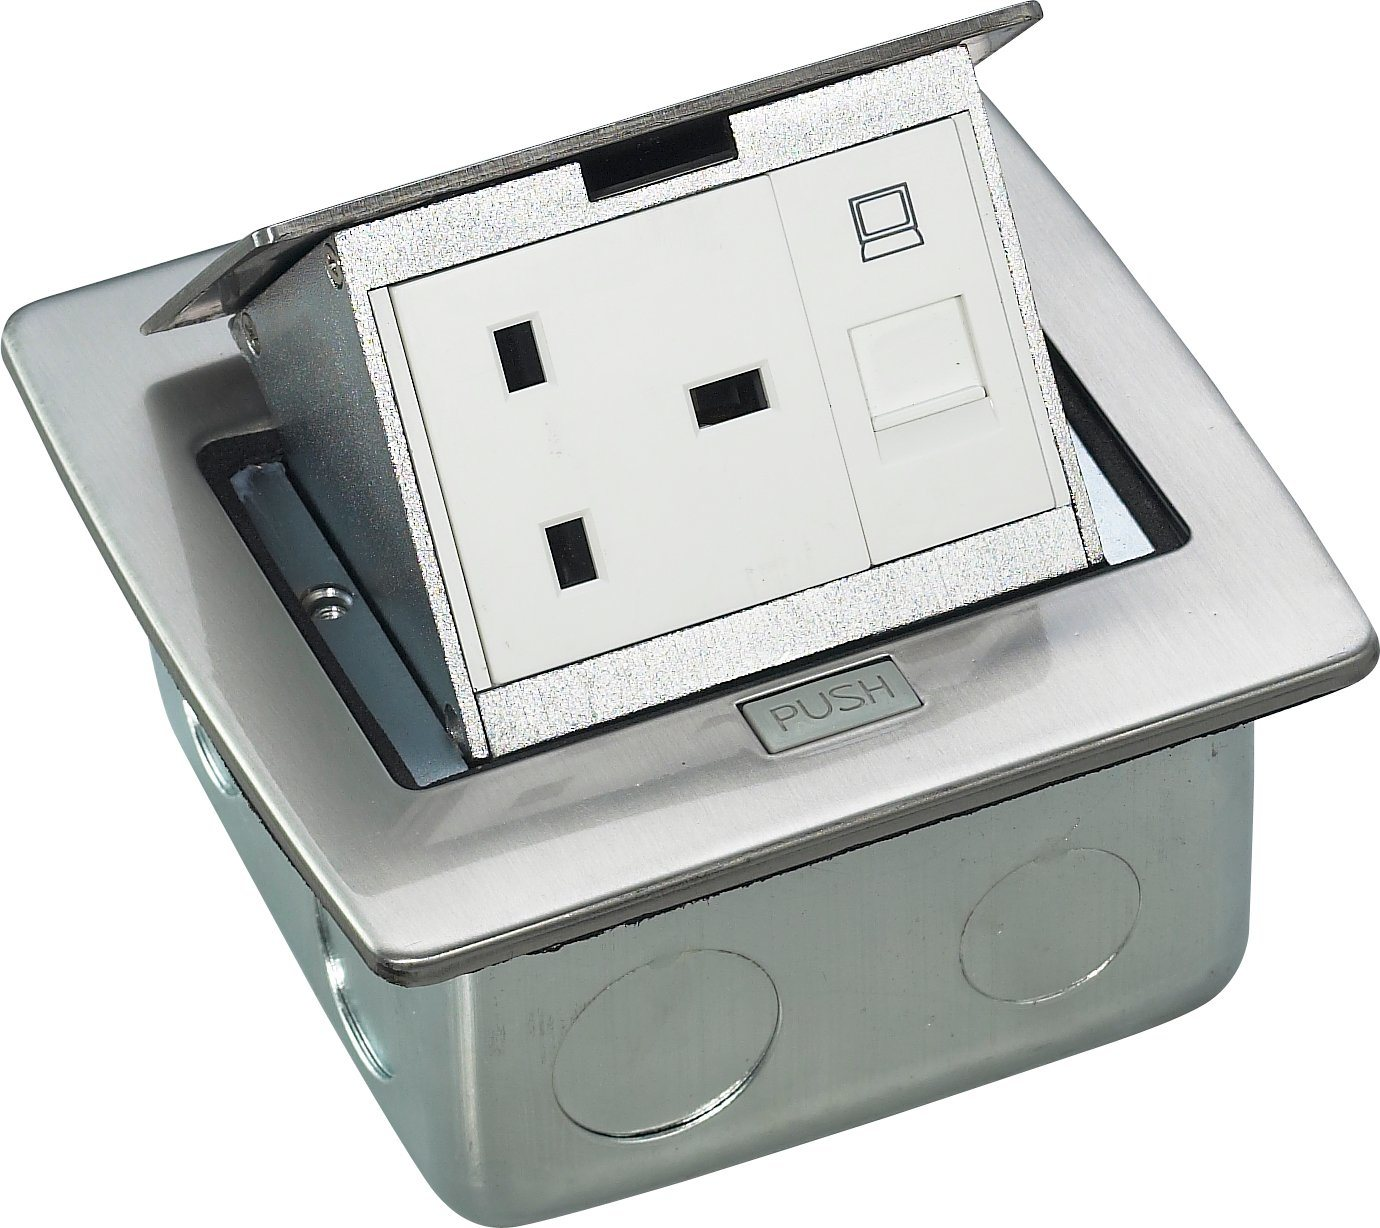 China Pop Up Electrical Floor Box Power Port   China Floor Box, Floor Boxes